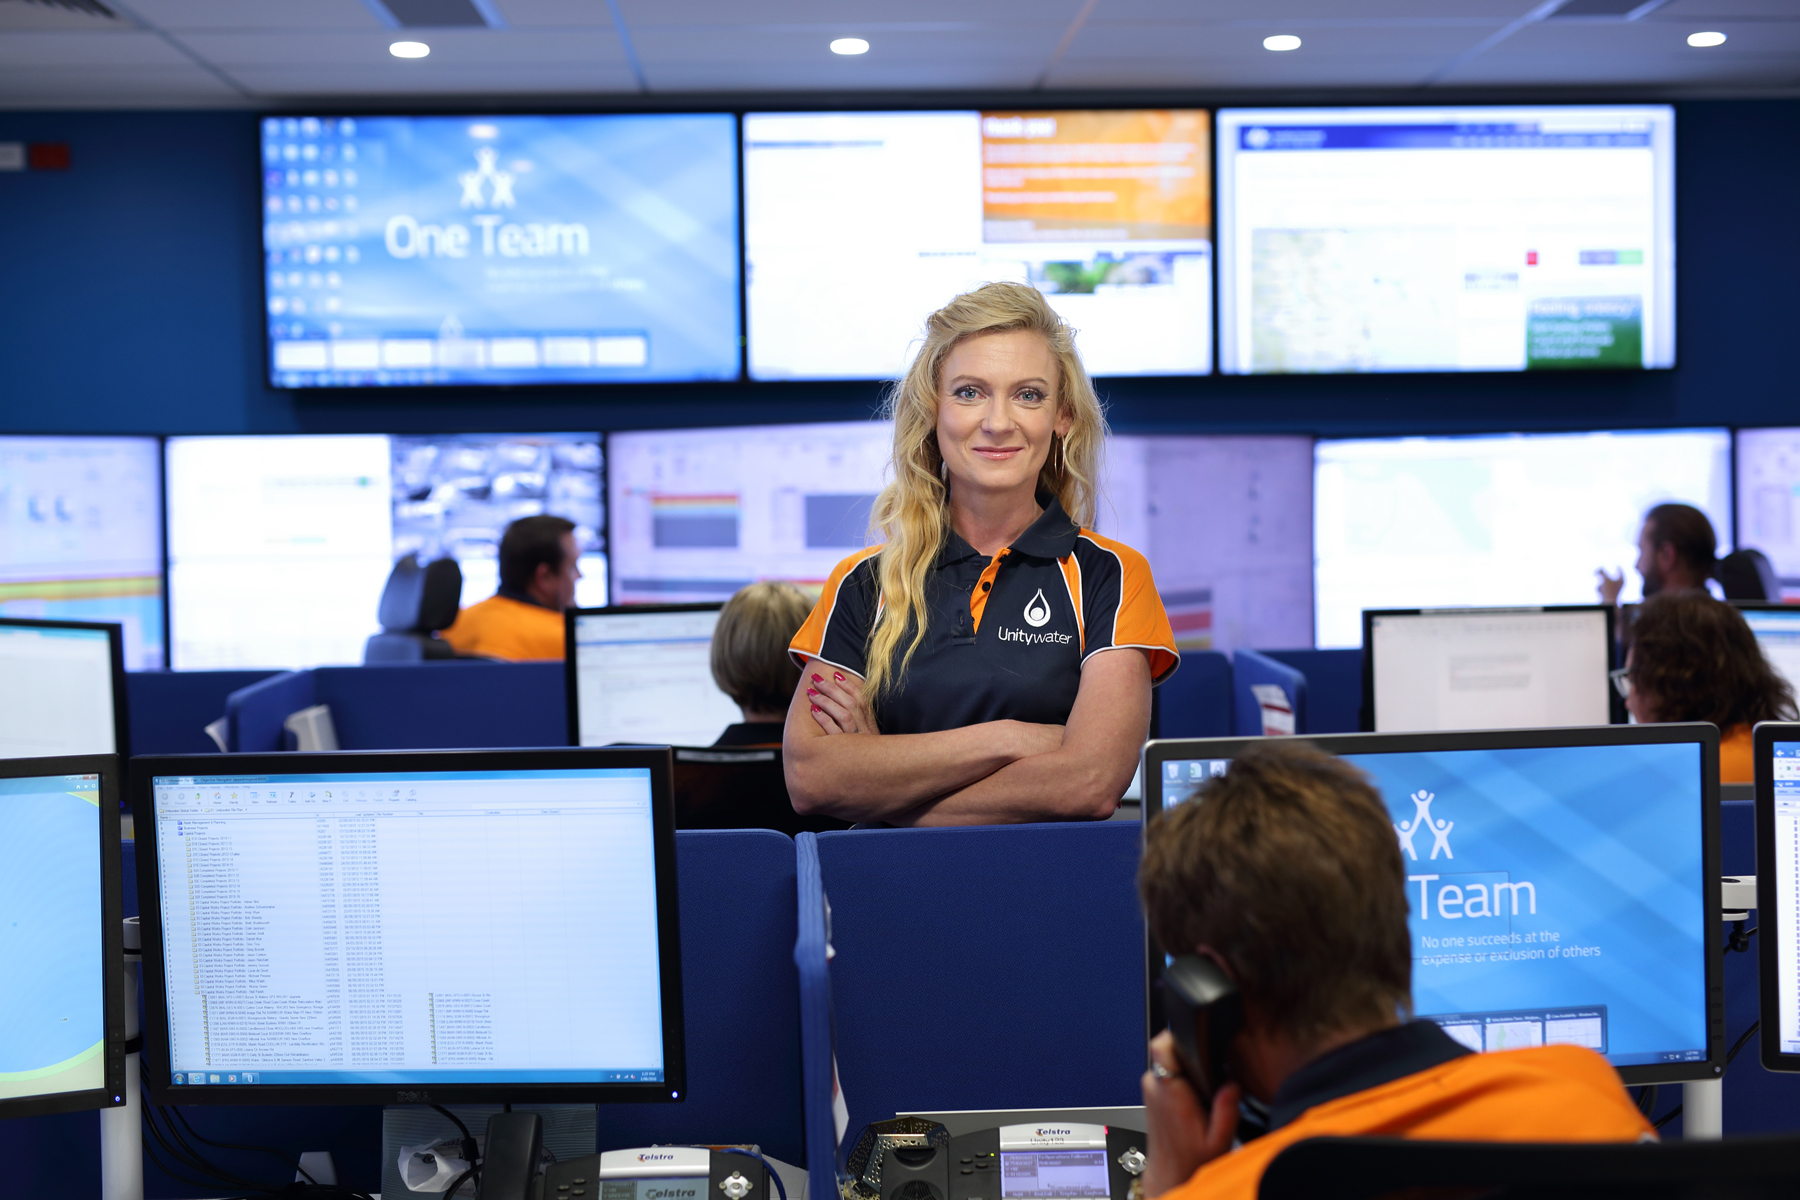 Unitywater Control Room female staff